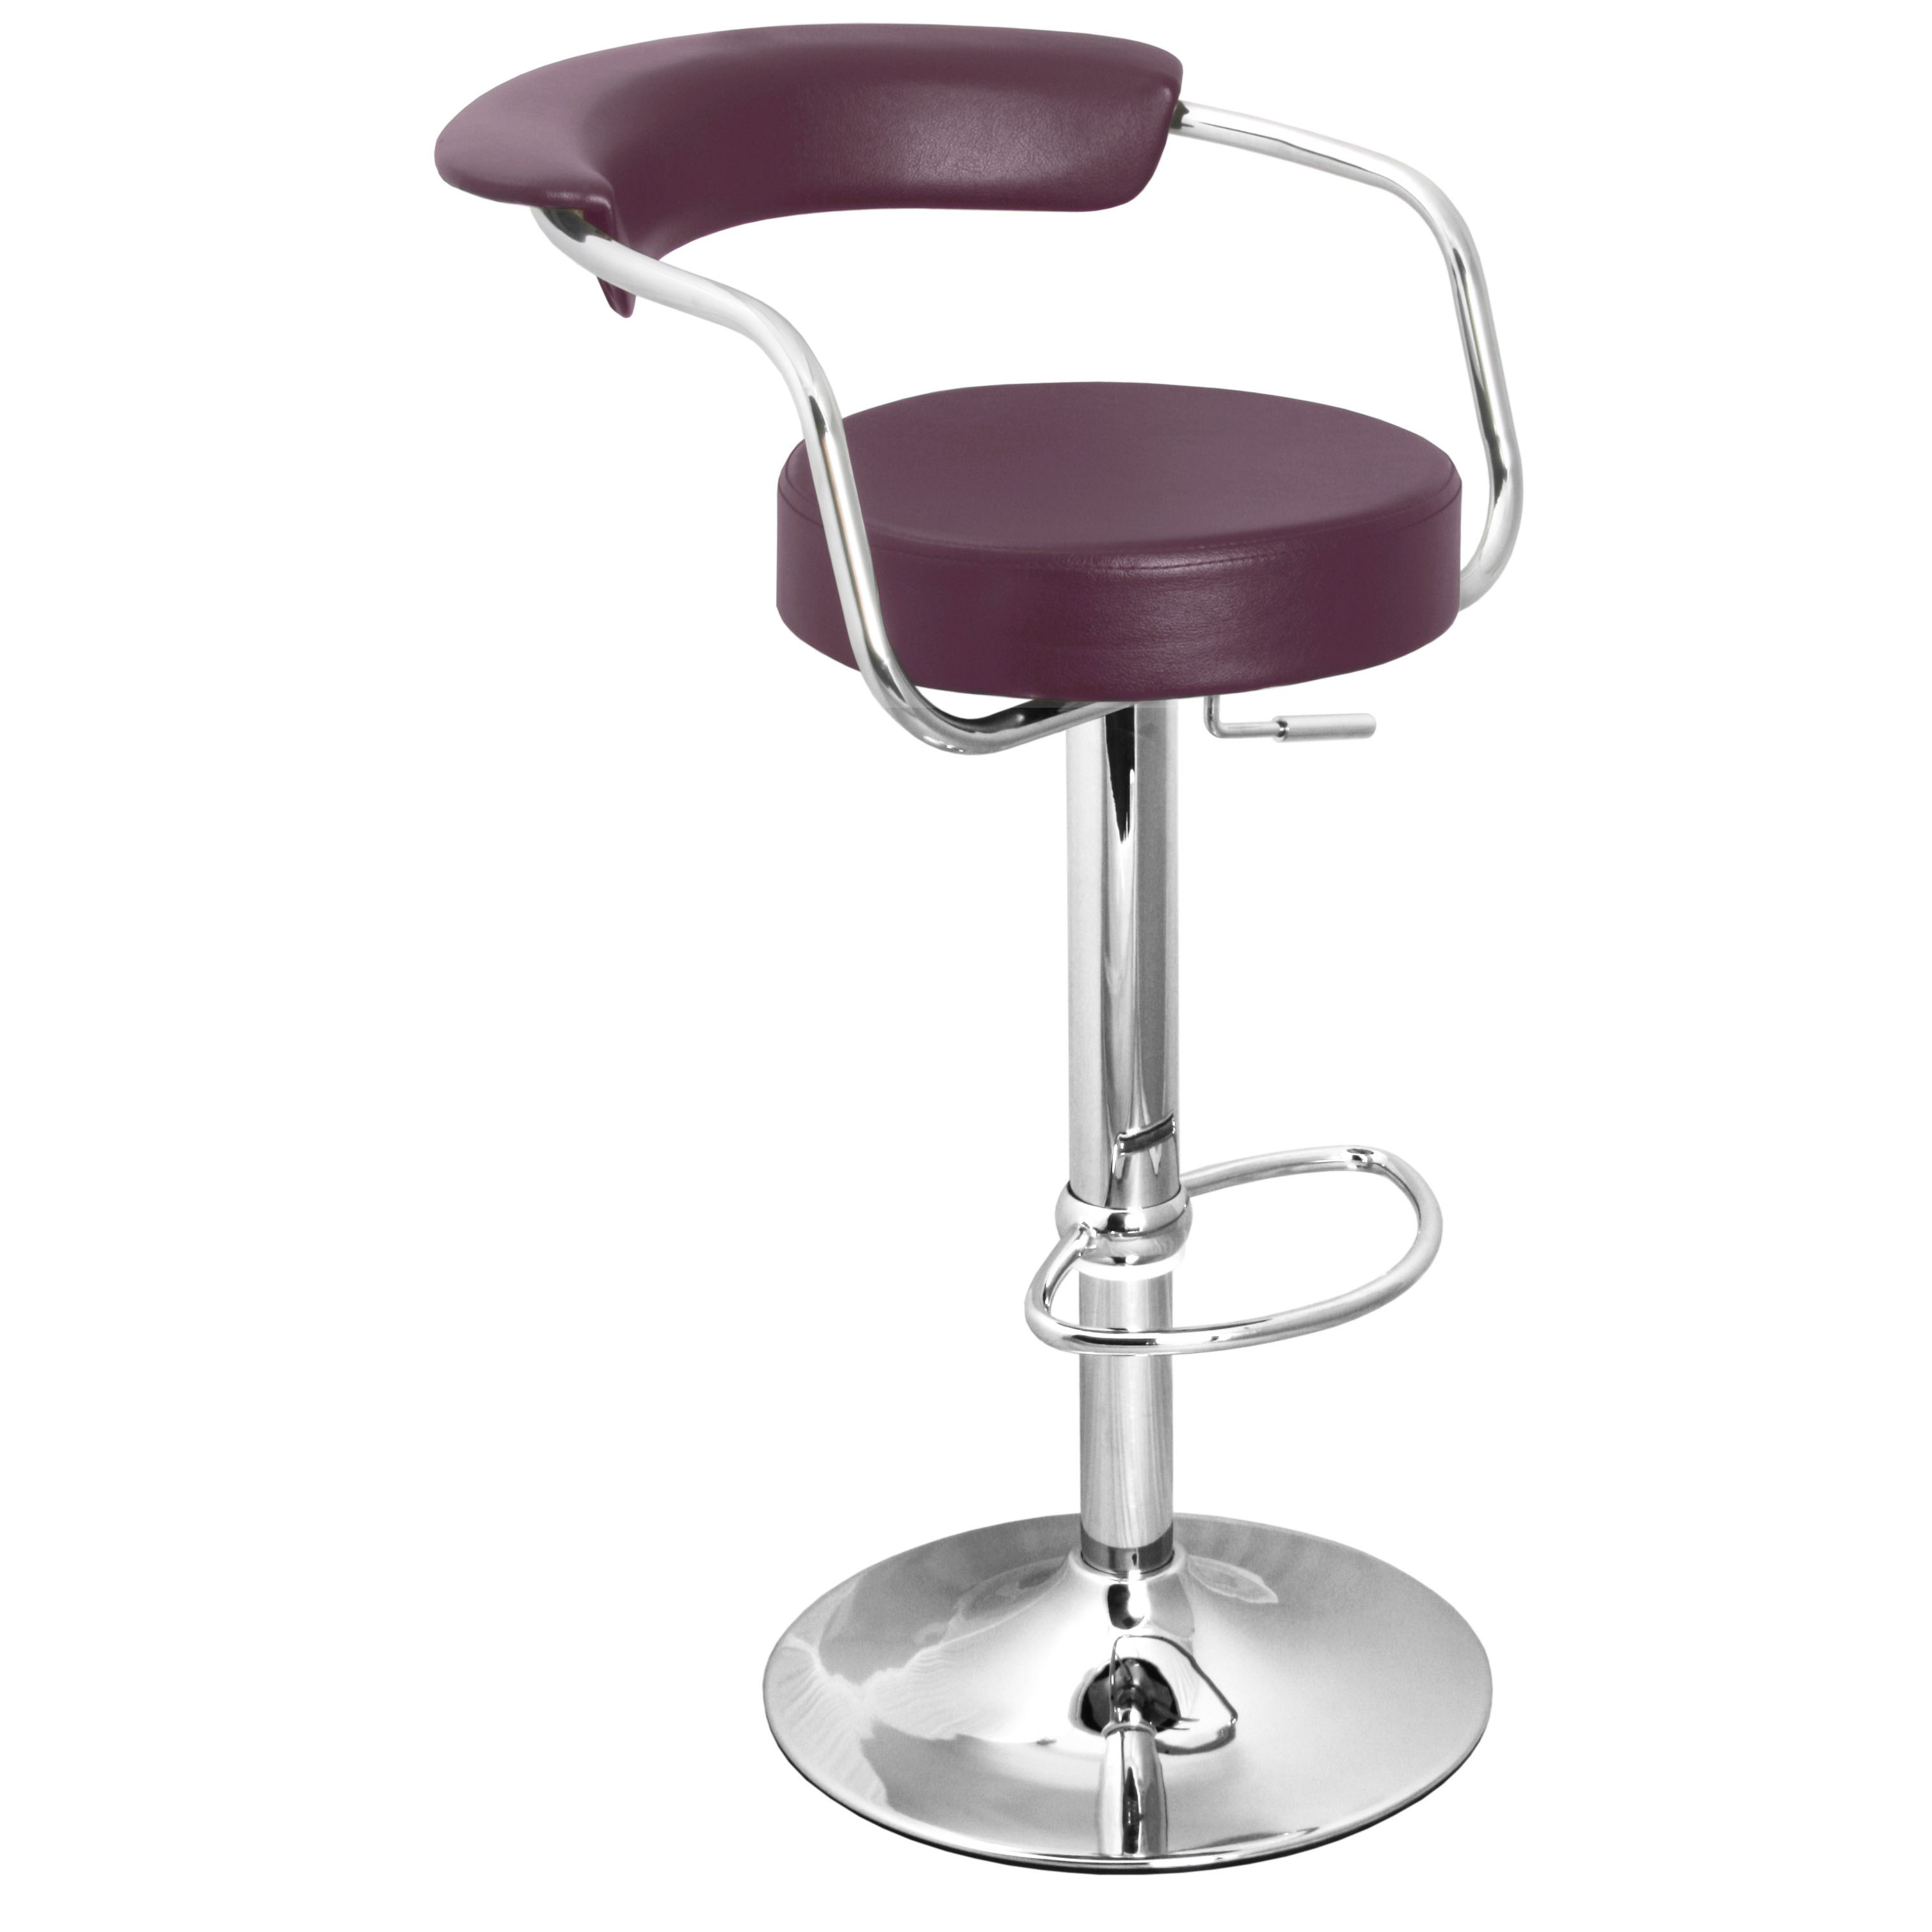 Zenith Bar Stool with Arms - Purple